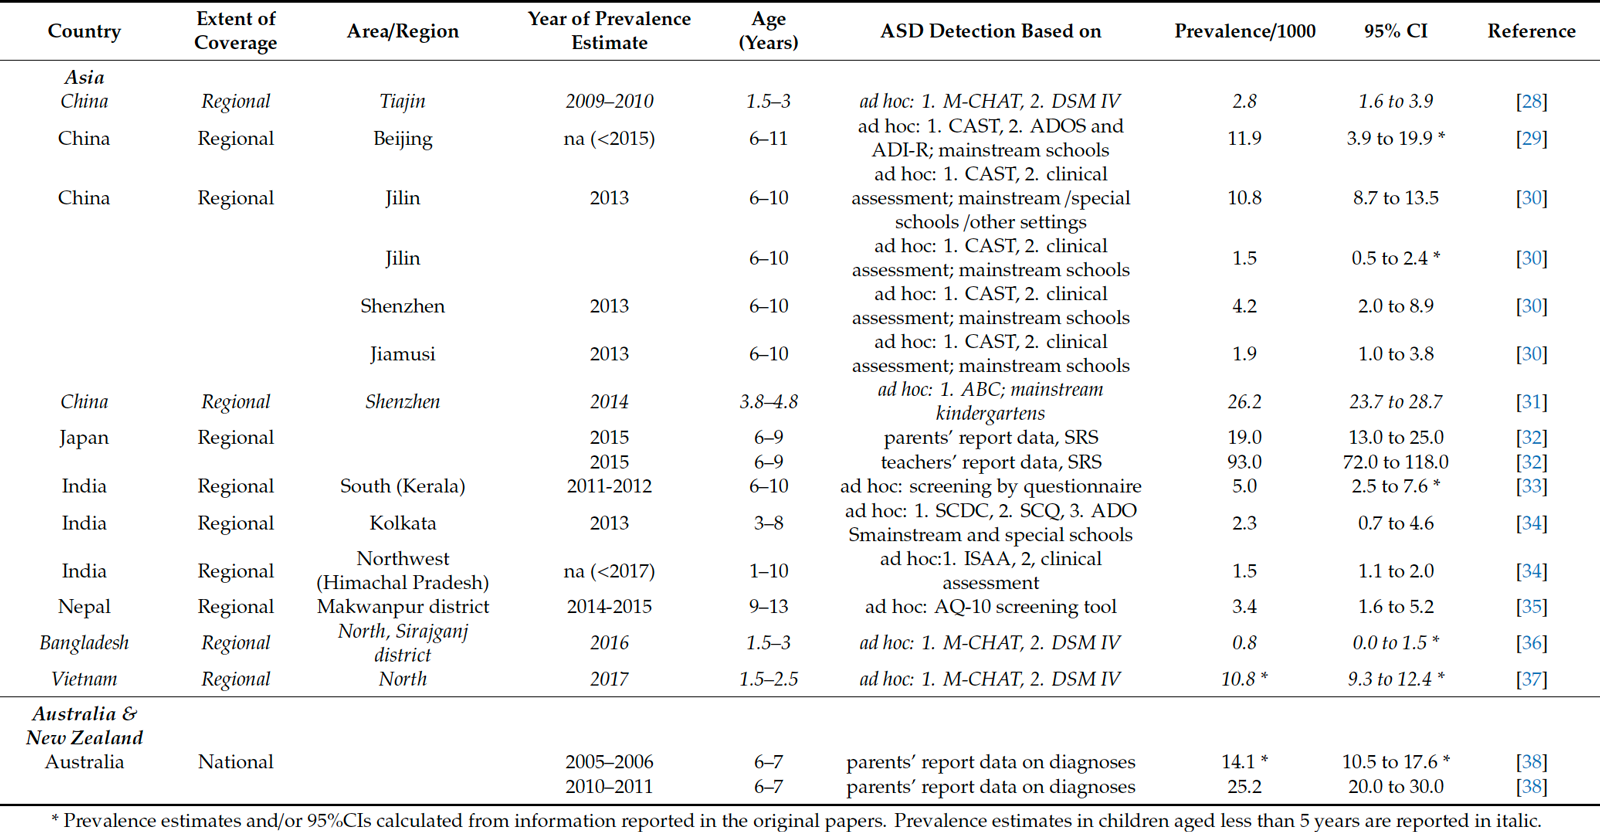 Table 3. Summary of prevalence studies published since 2014 in Asia, Australia & New Zealand.